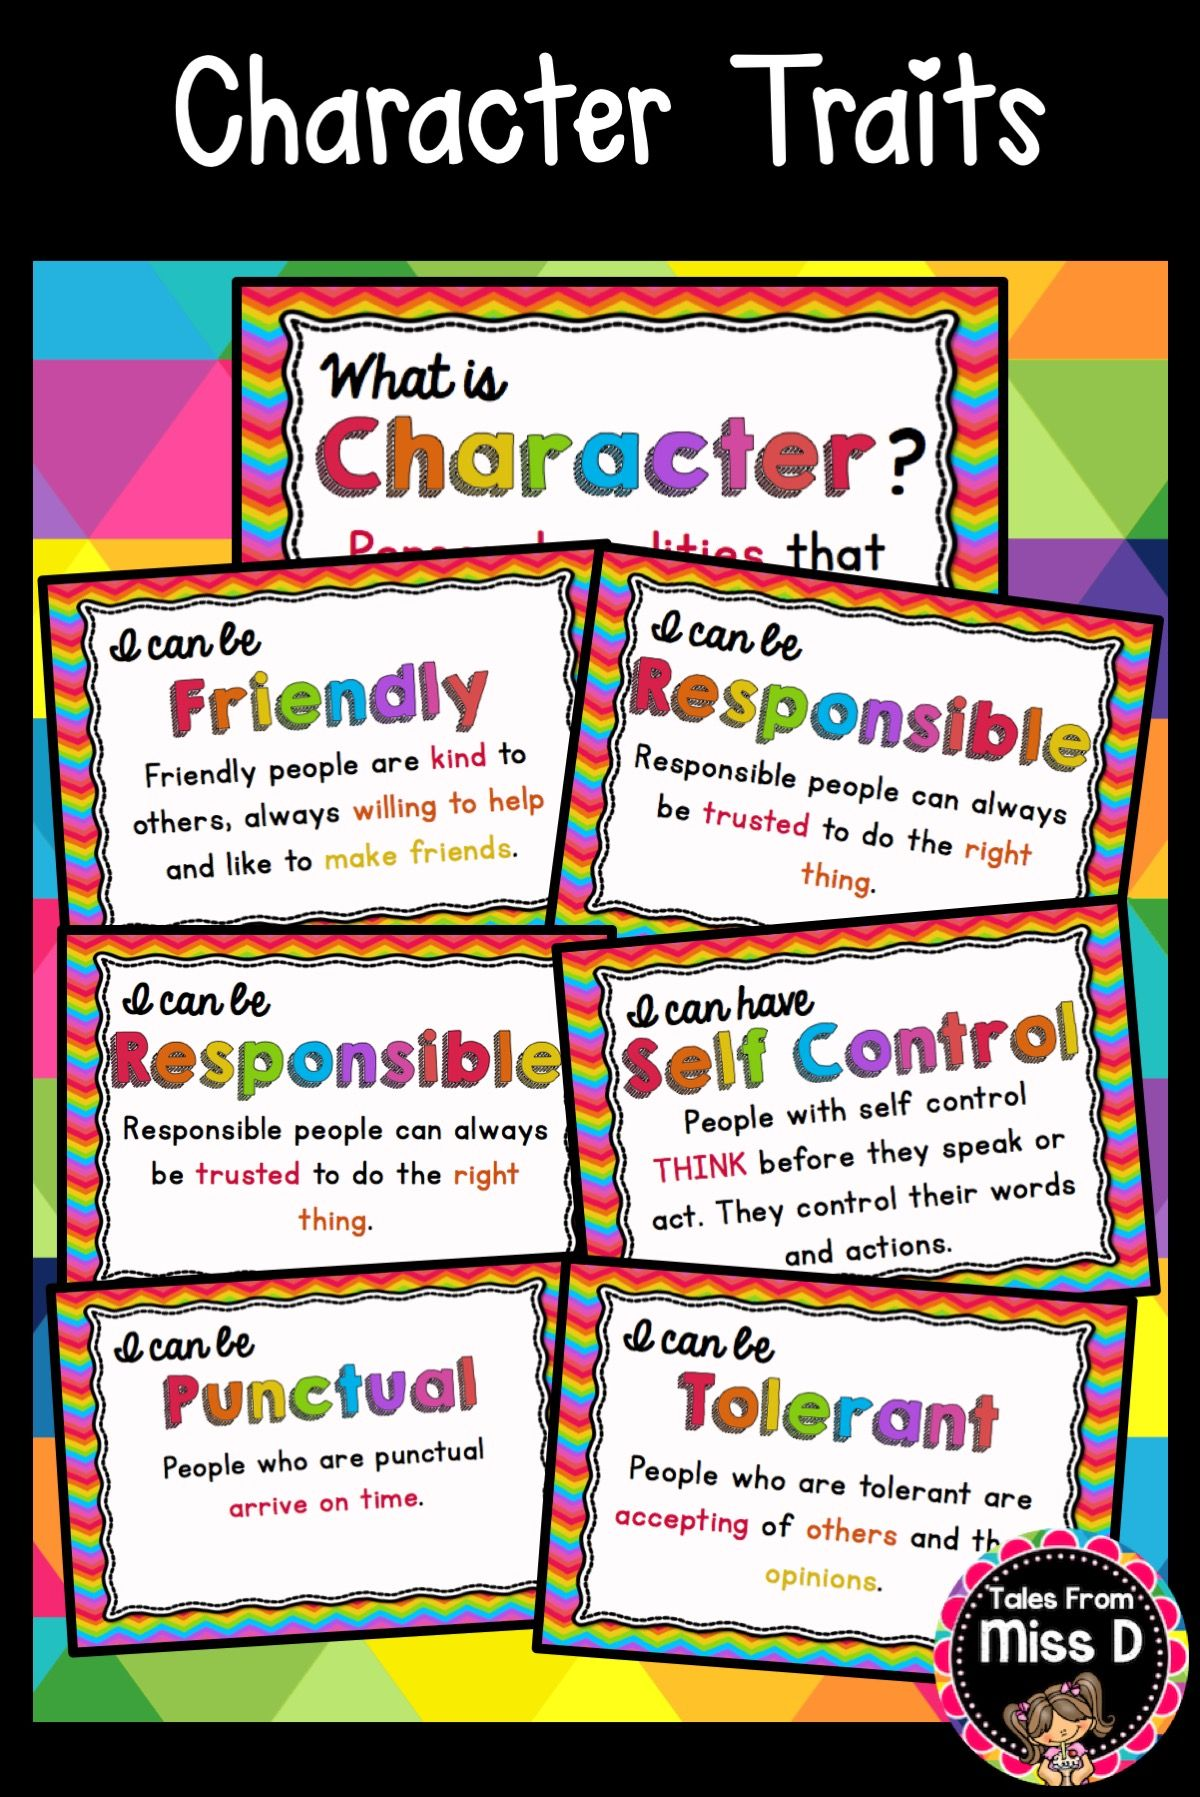 Character traits posters teaching social skills character trait character traits posters 21 posters including friendly tolerant punctual responsible self fandeluxe